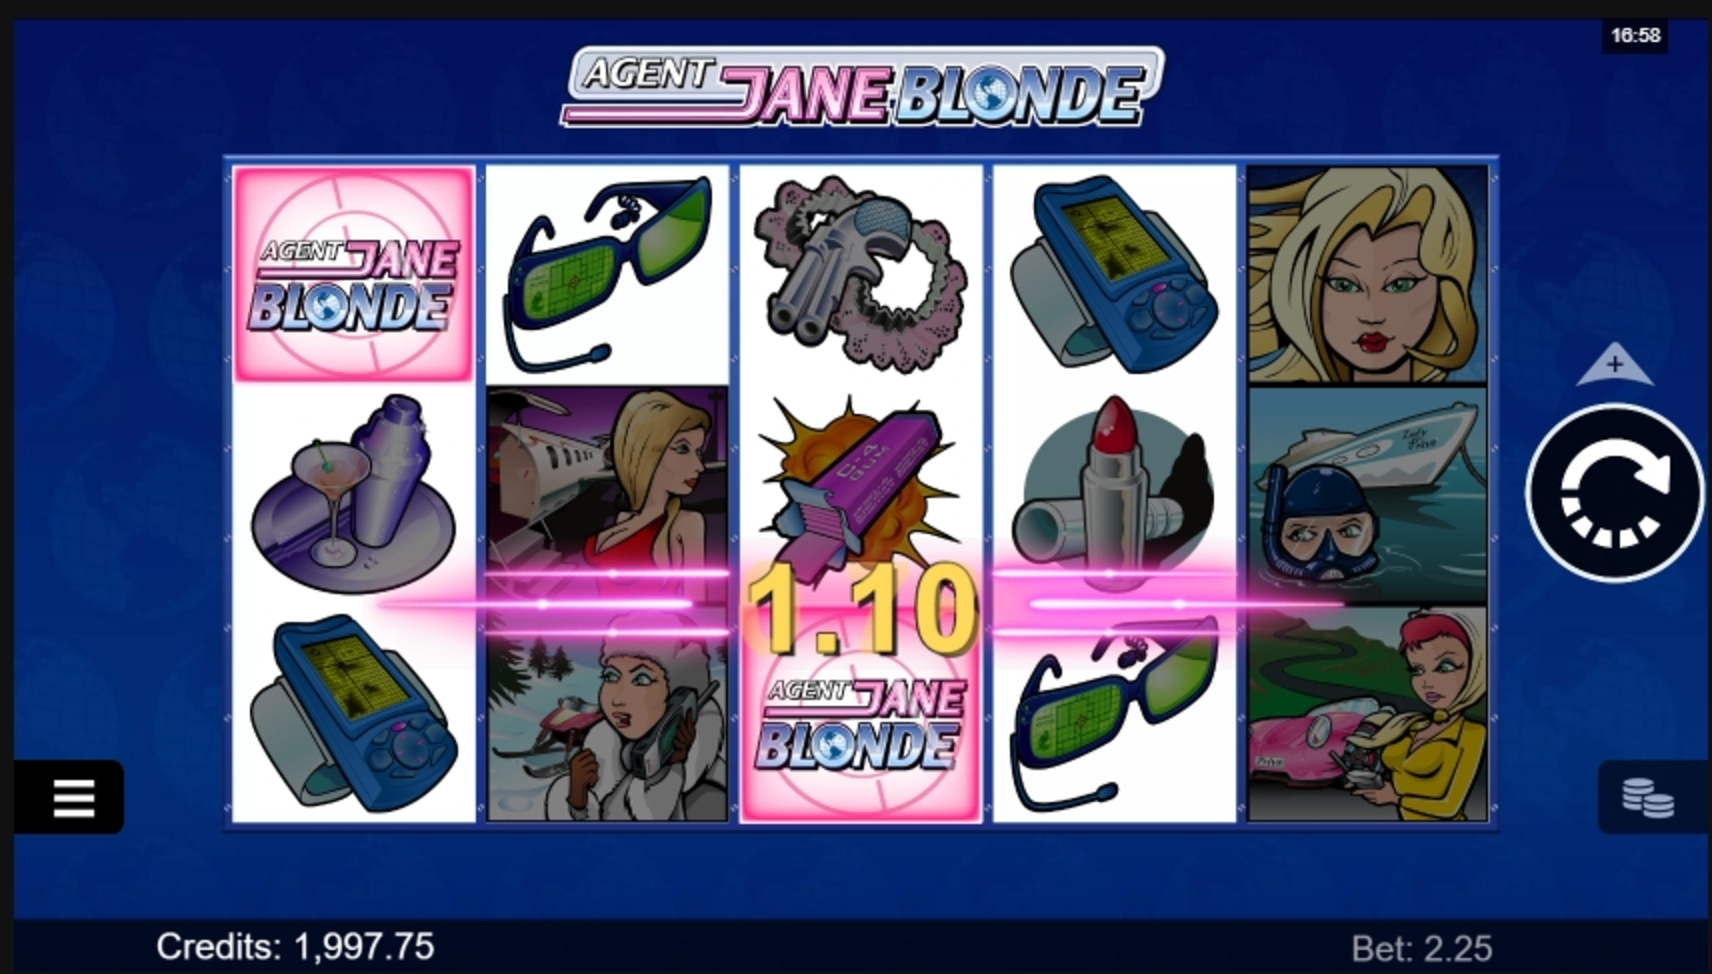 Win Money in Agent Jane Blonde Free Slot Game by Microgaming